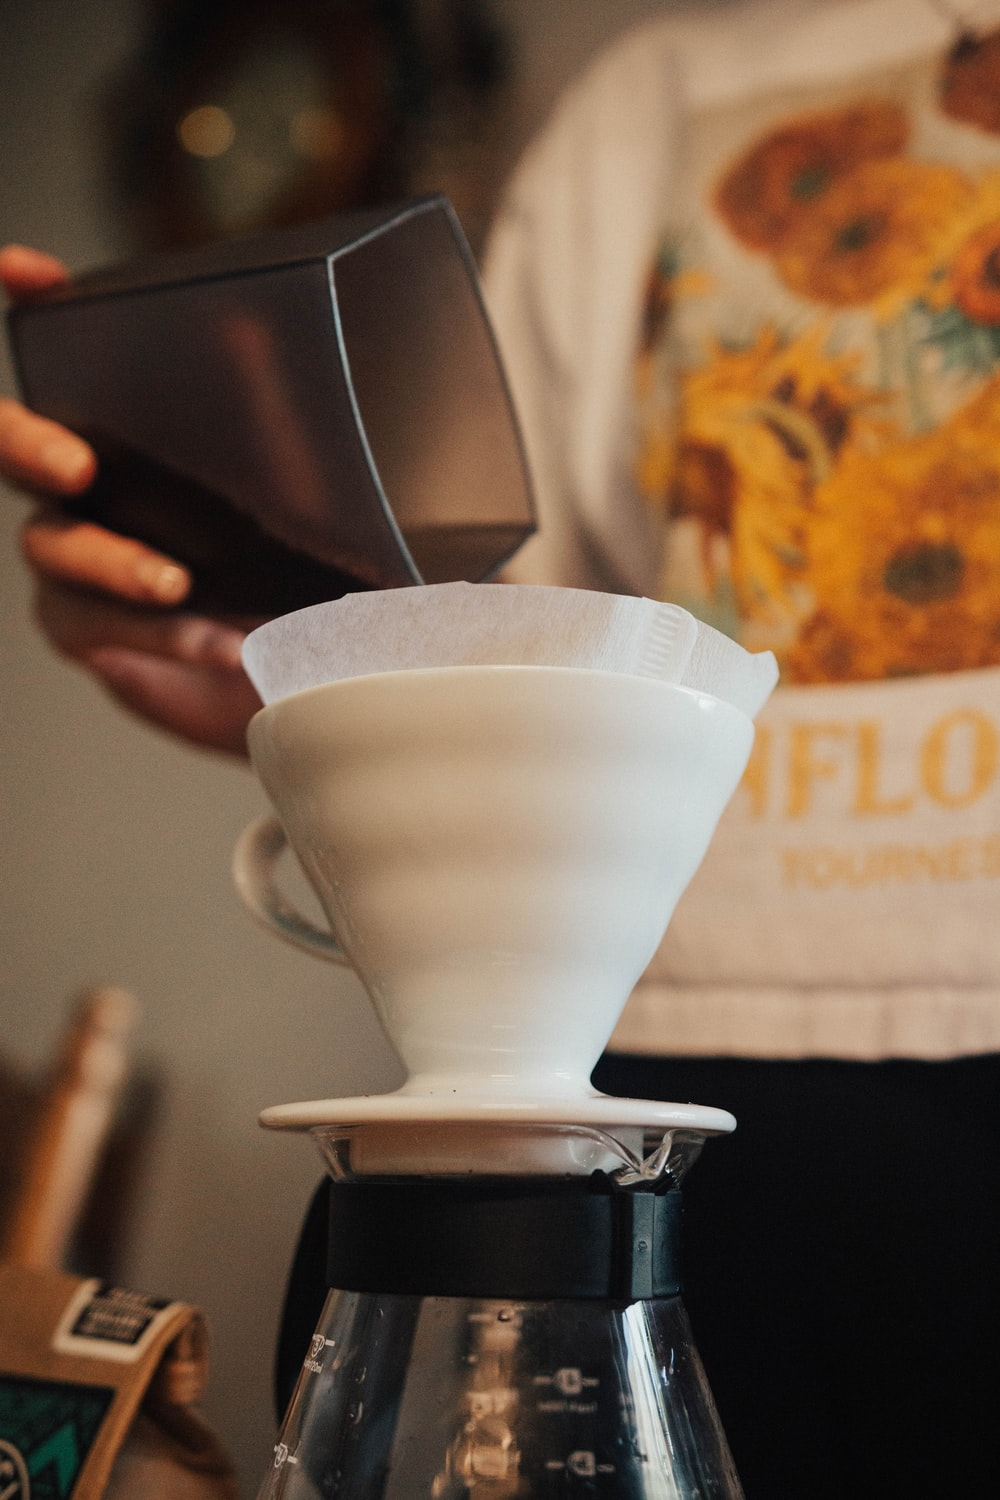 woman pouring coffee powder into cup with filter